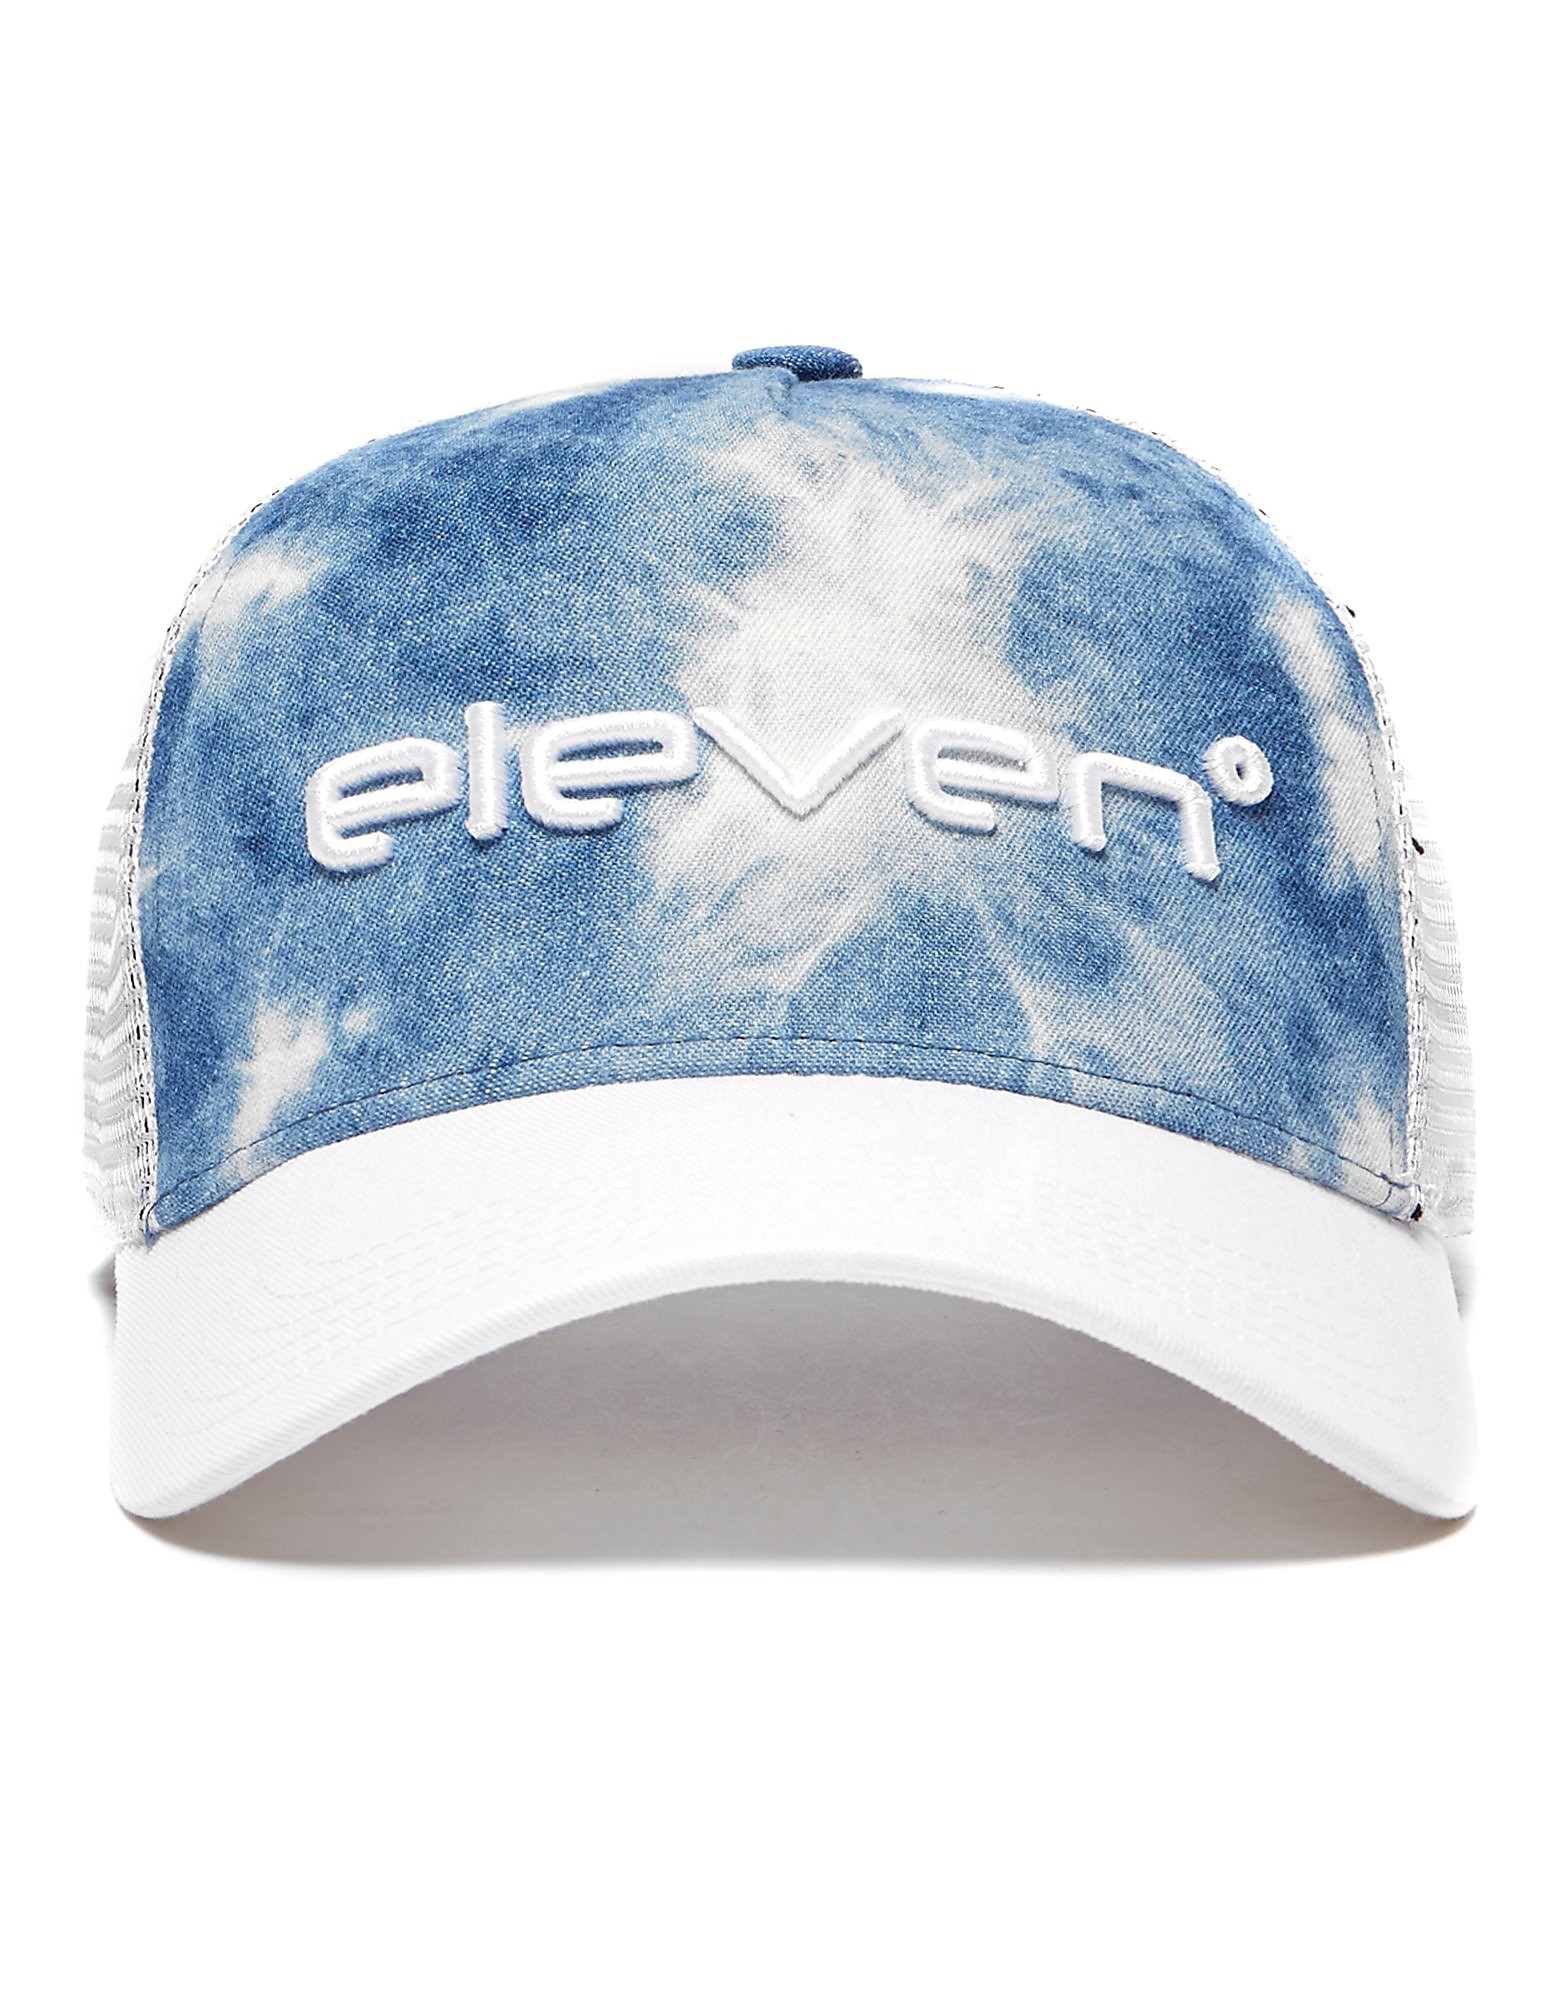 Image de 11 Degrees Casquette Trucker Homme - Denim, Denim